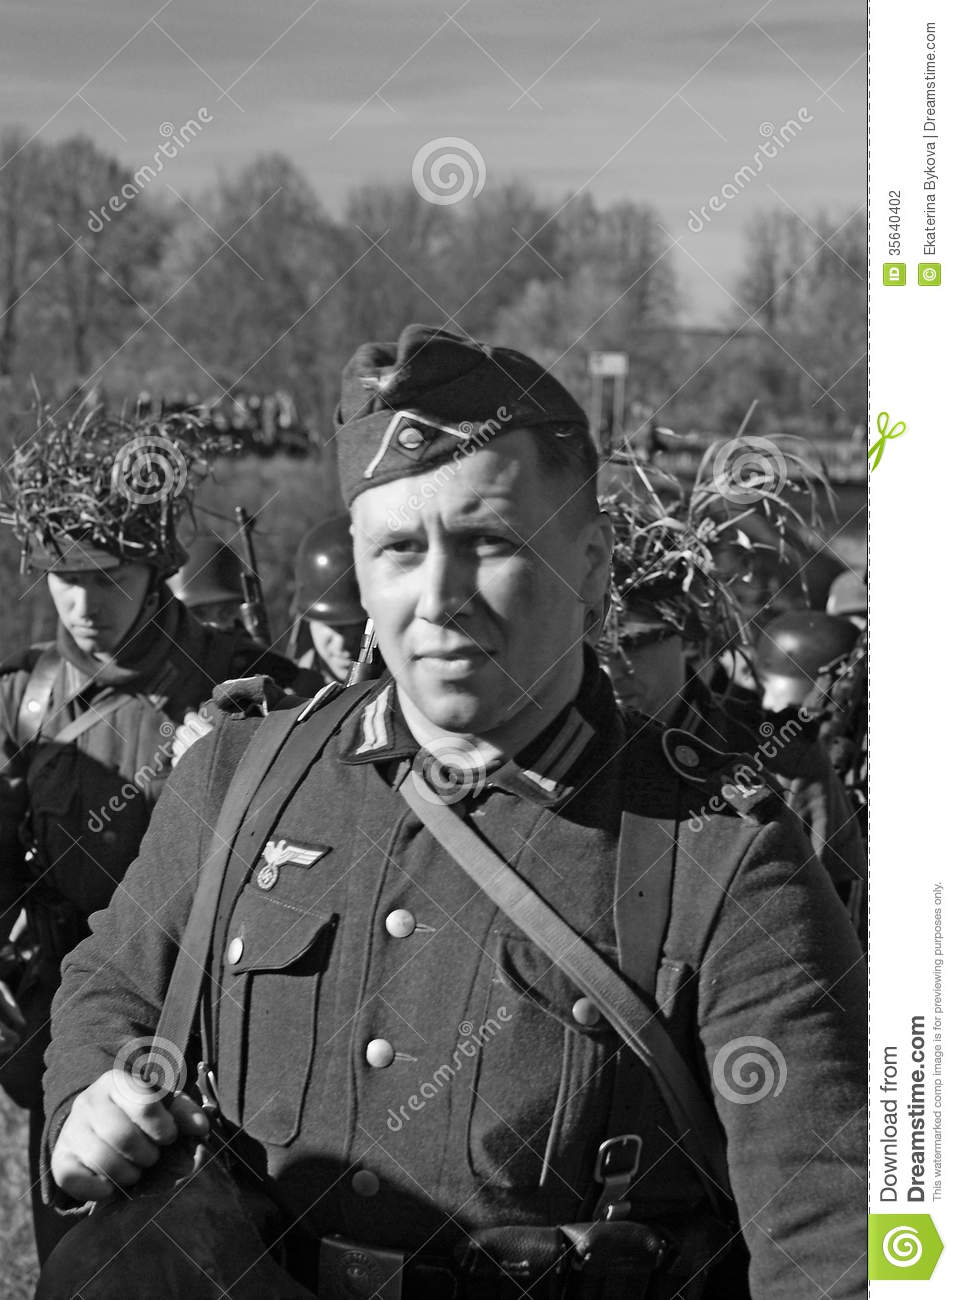 O To Ww Bing Comsquare Root 123: German Soldier-reenactor Editorial Photography. Image Of